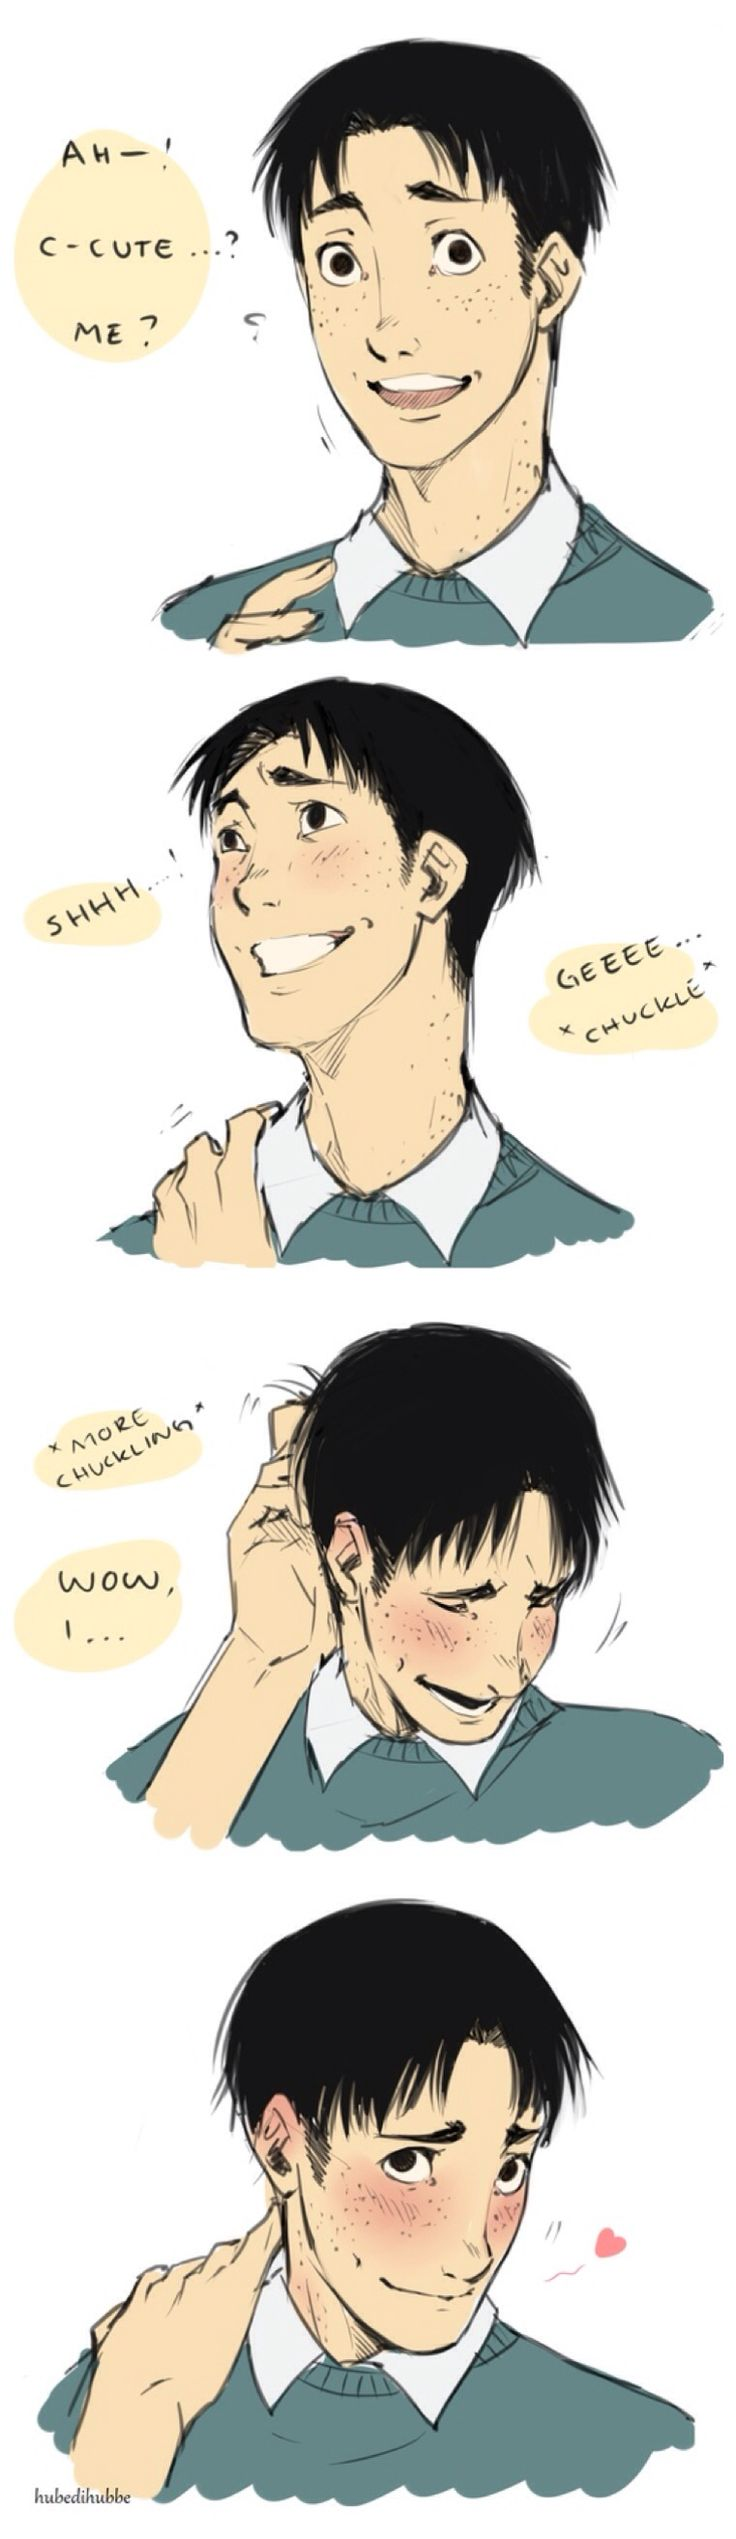 Ahh~ Marco, is it impossible for you NOT to be cute? *swoons 1000x over and over*